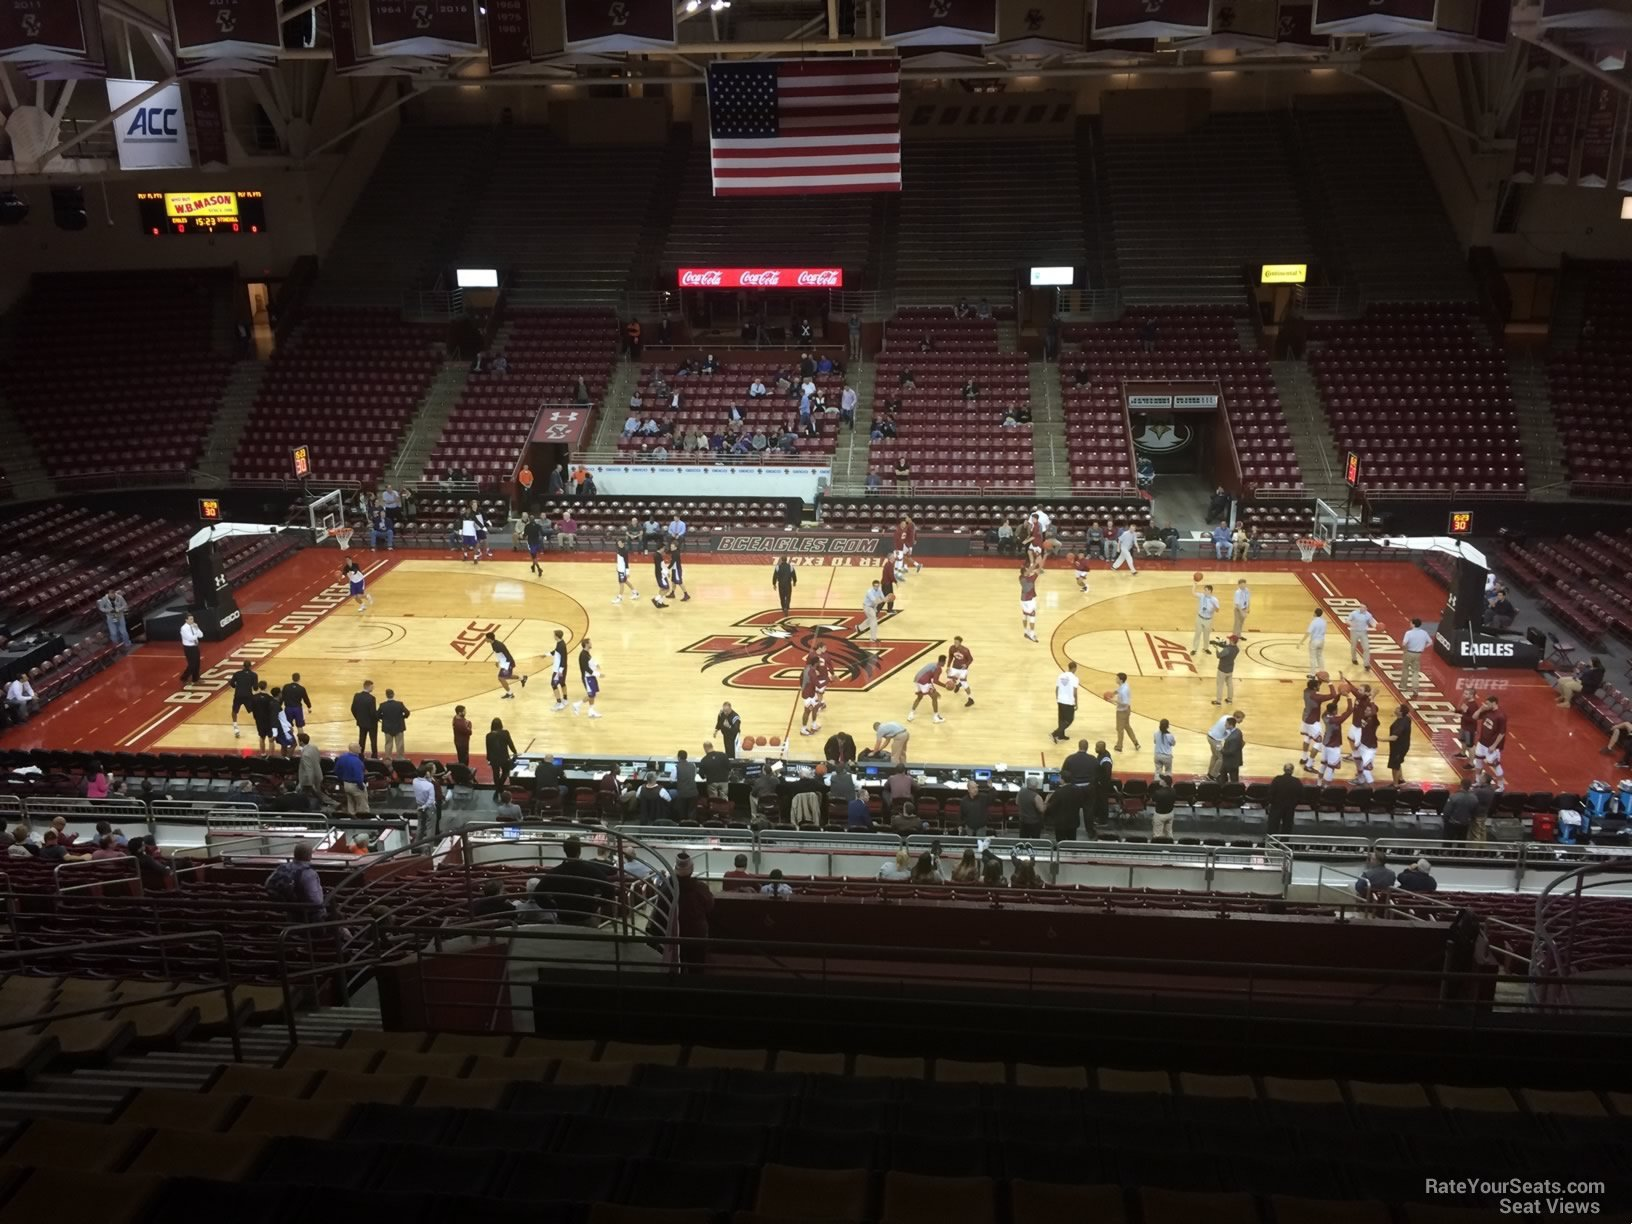 Conte forum section ll rateyourseats com